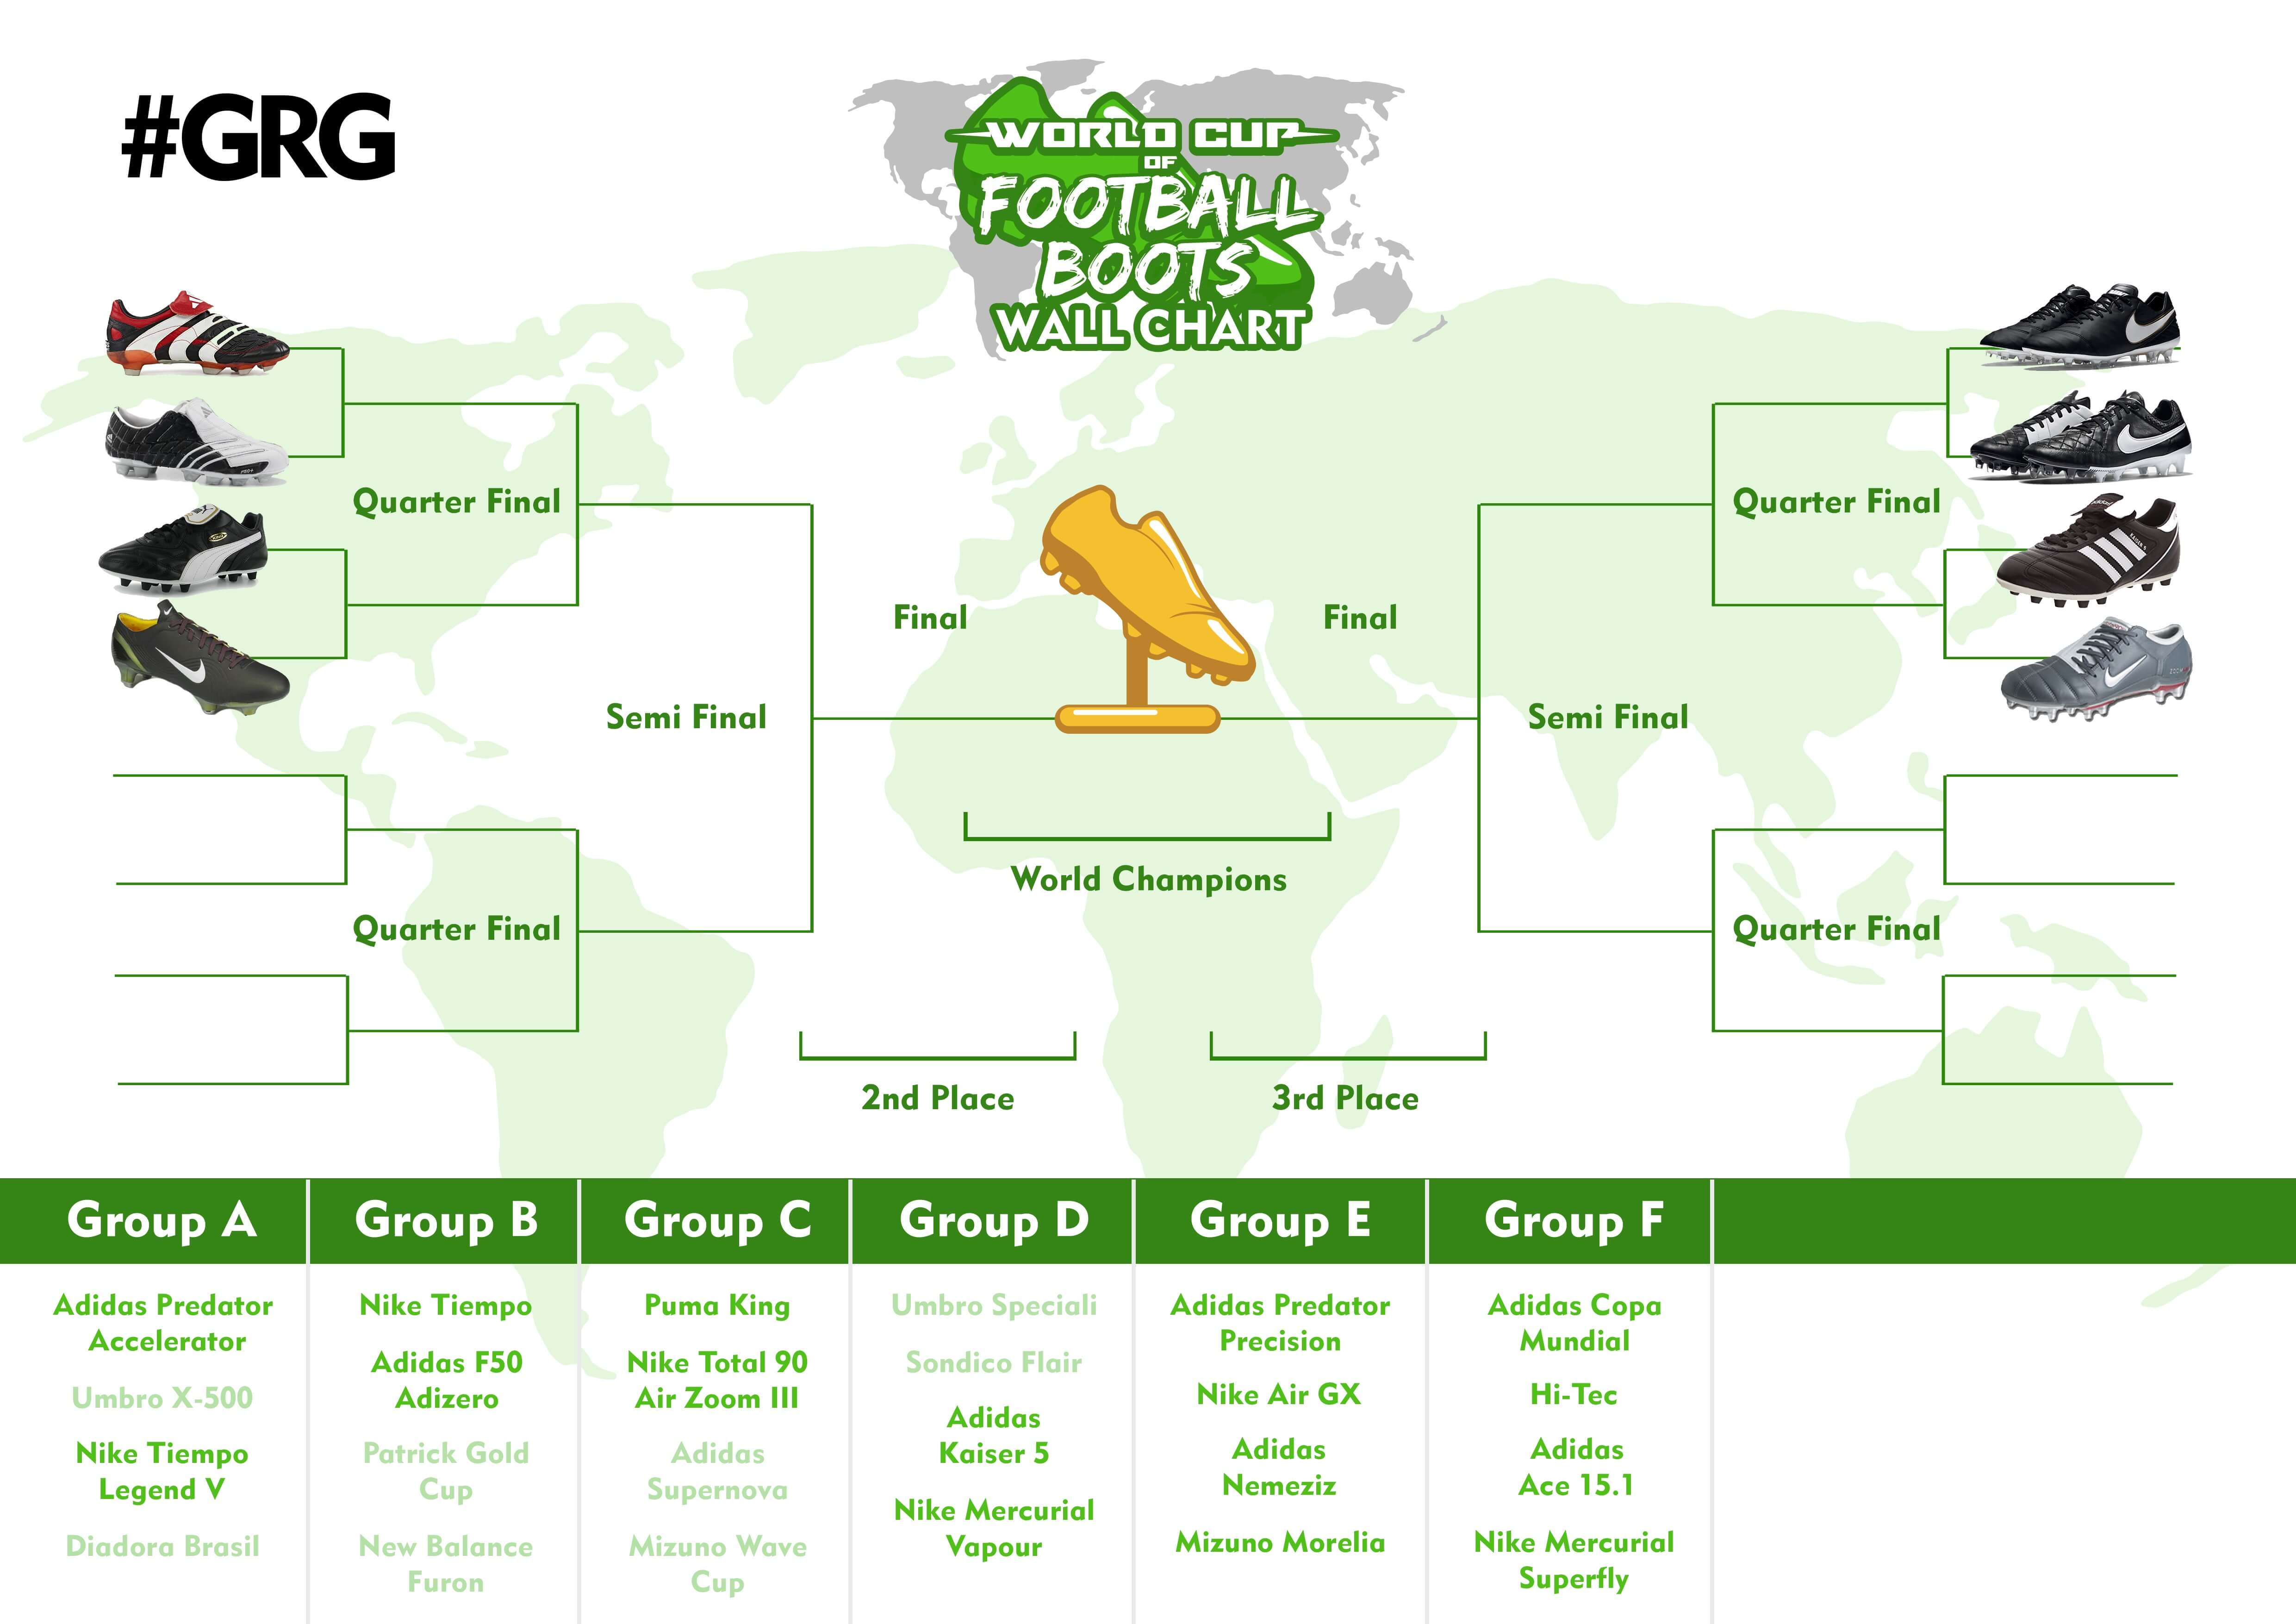 World Cup of Football Boots Wall Chart GROUP ABCD.jpg